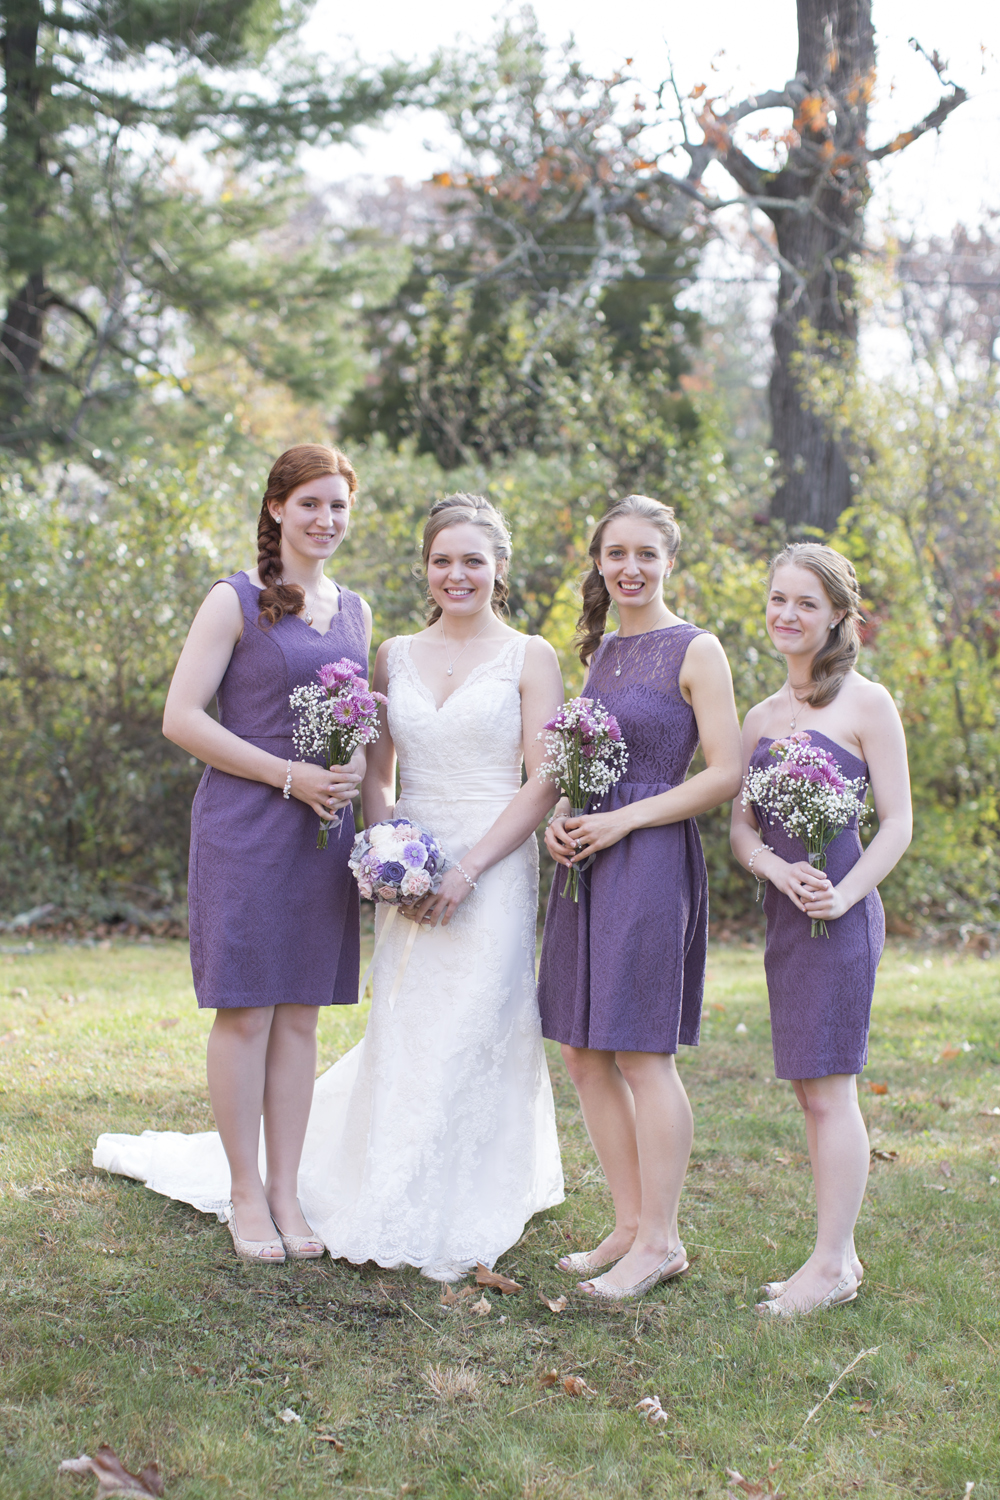 Bridesmaids in lavender rustic dresses with lavender flowers and baby's breath